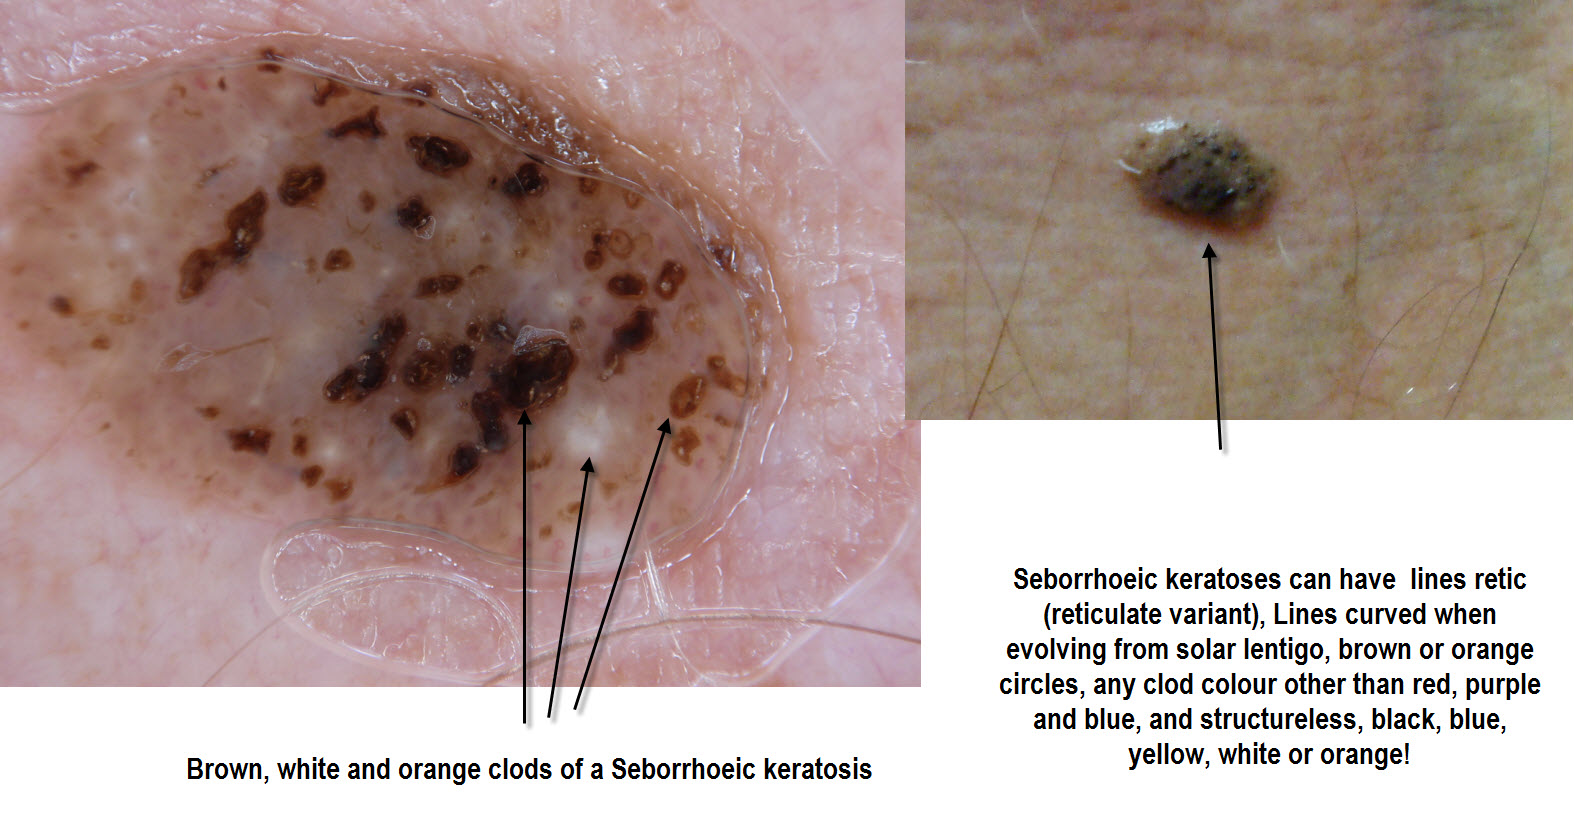 Dermoscopy Made Simple: Seborrhoeic Keratoses